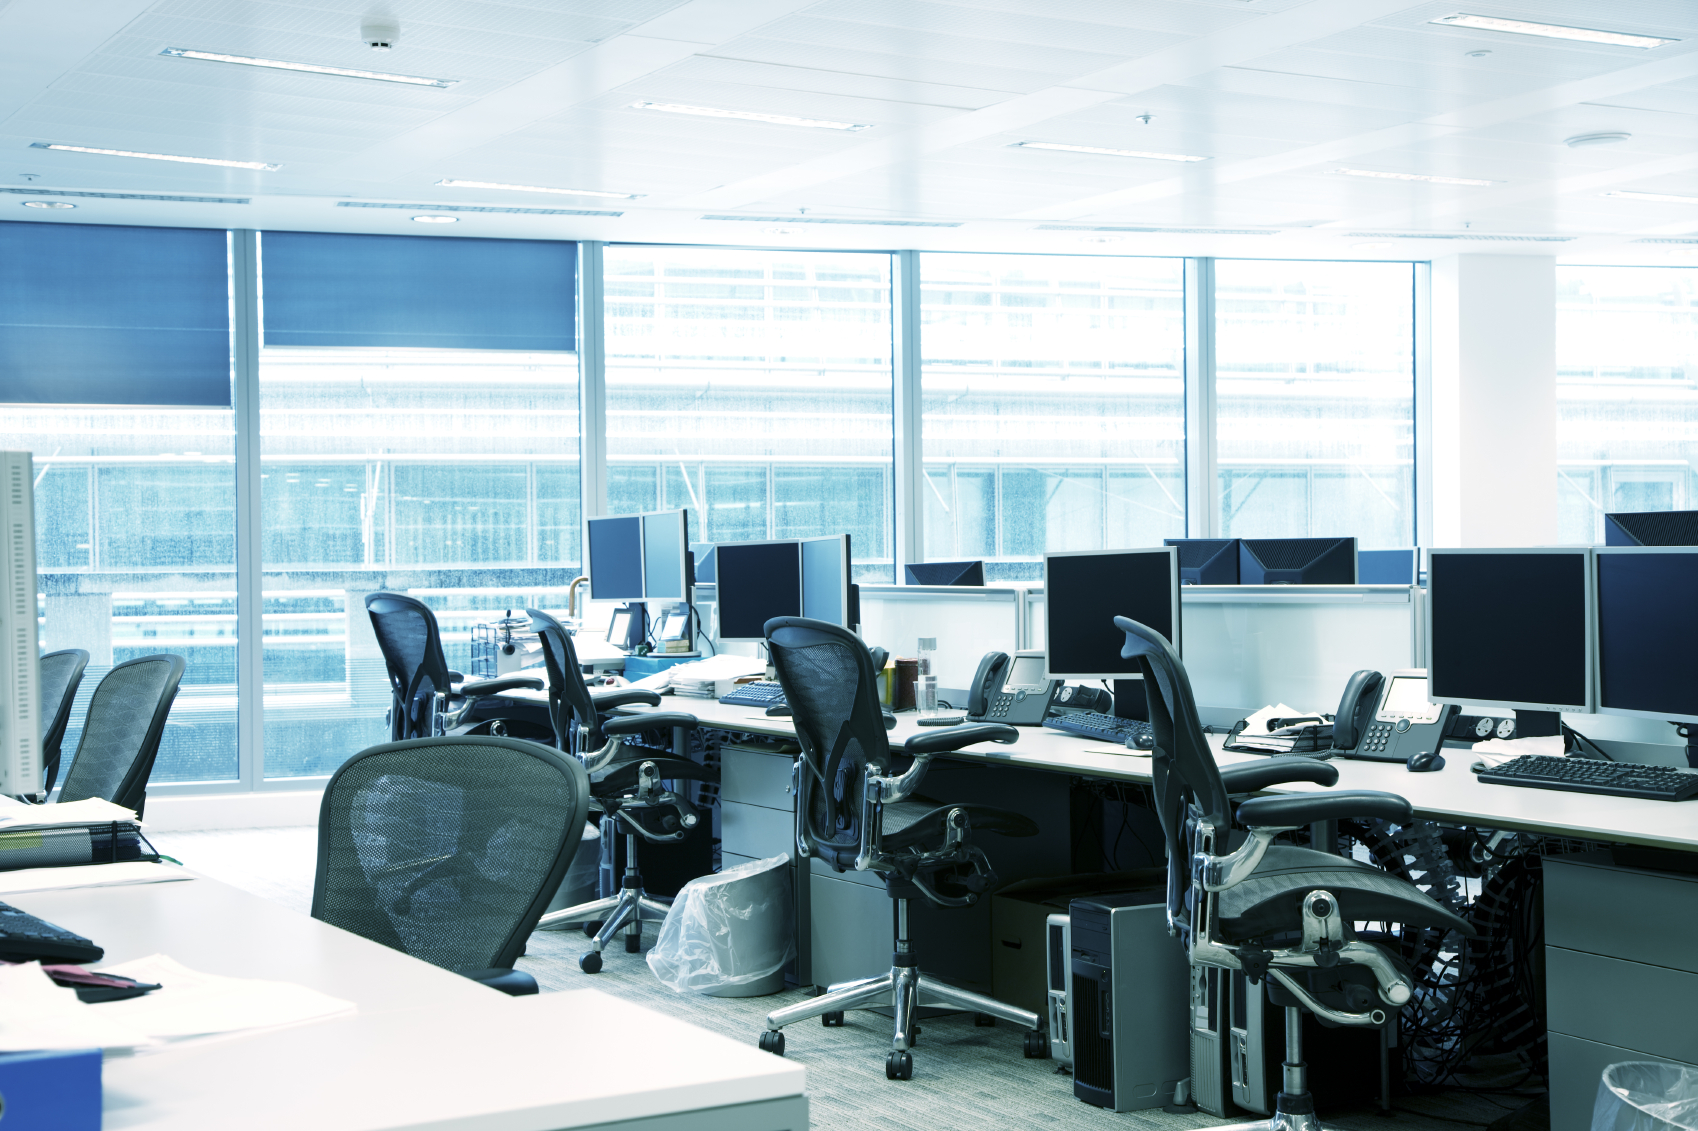 Office space works station chairs & technology.jpg